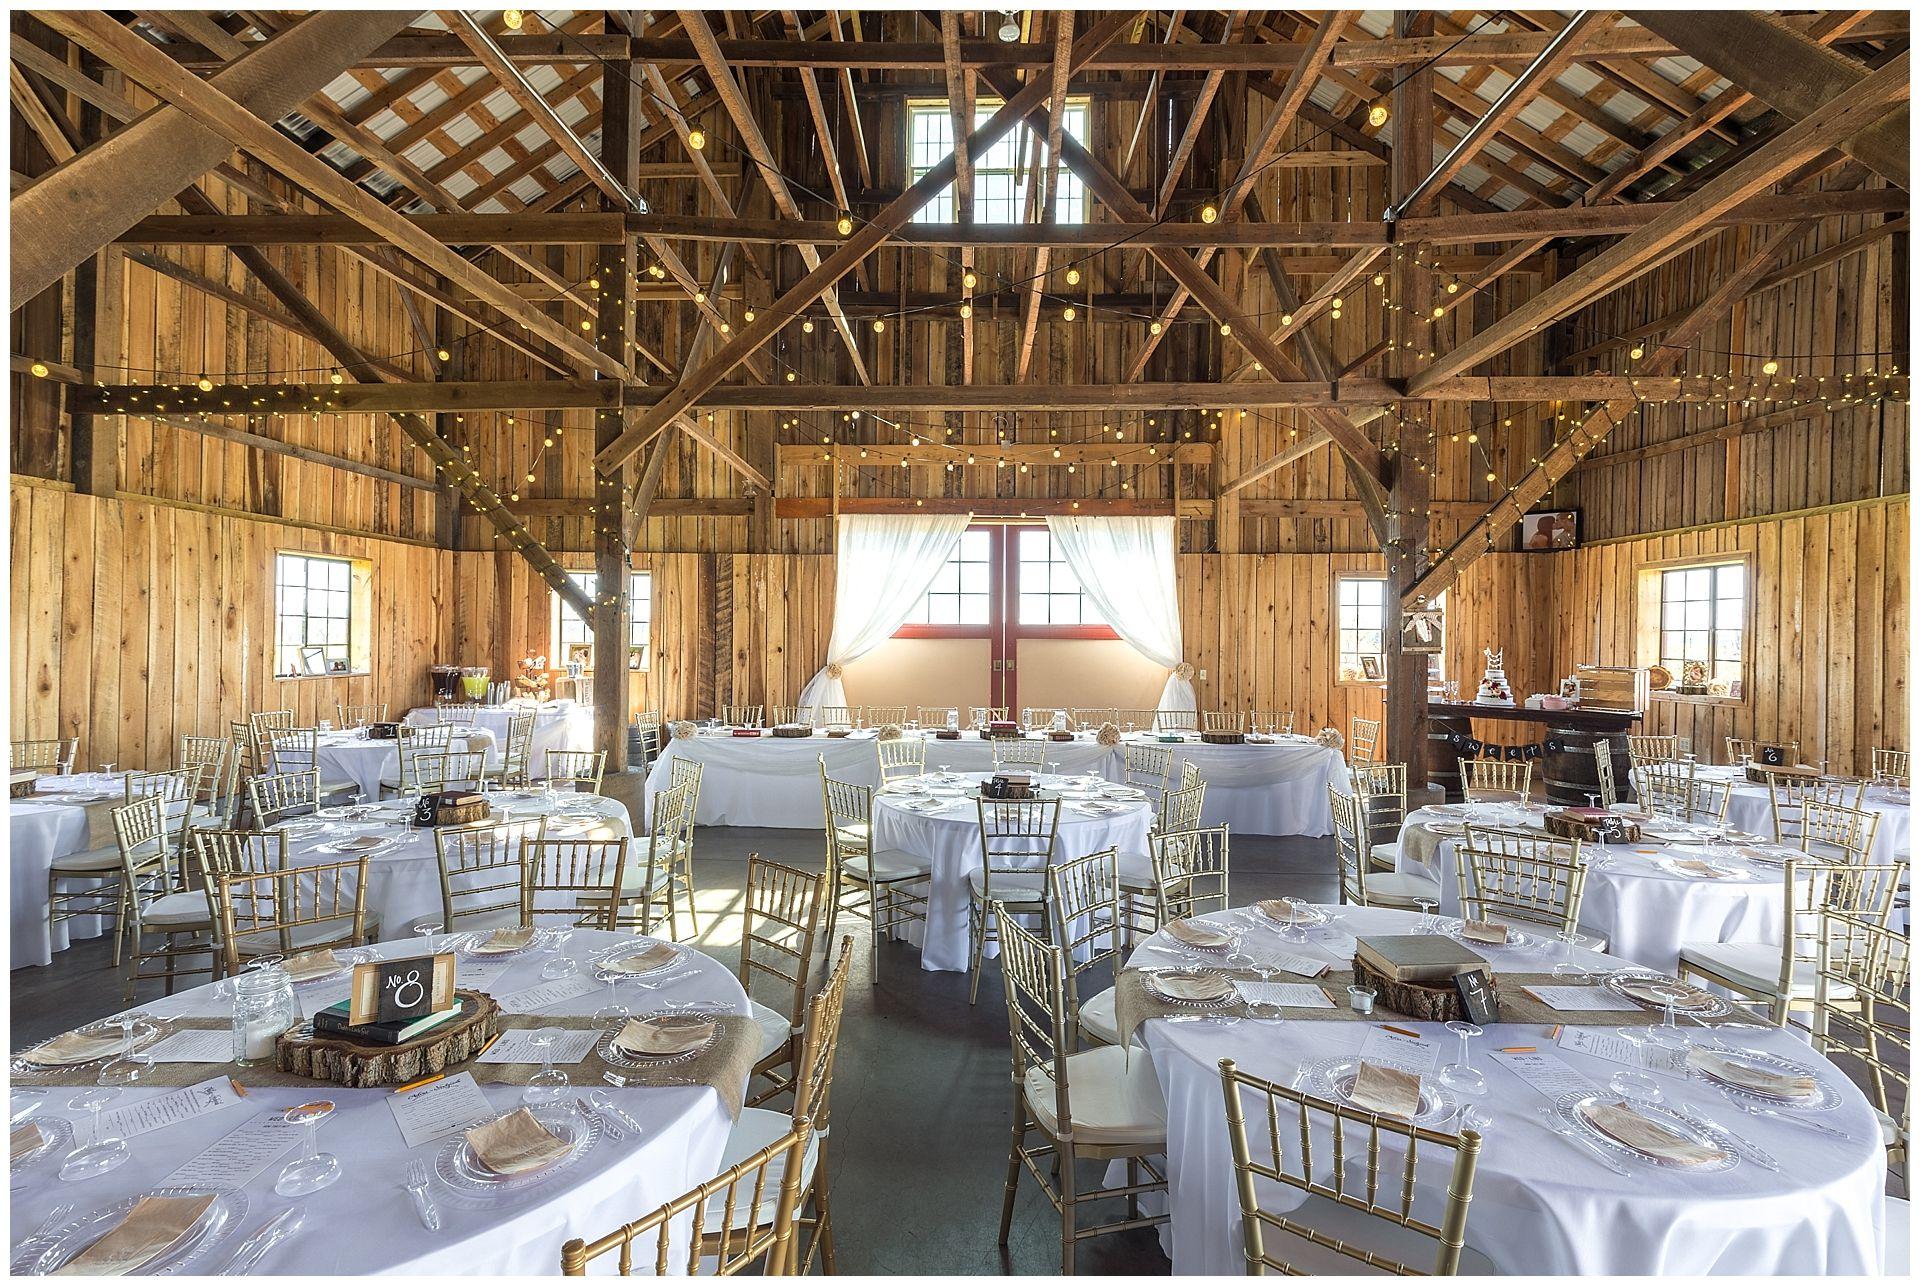 Evans Orchard Event Barn Wedding Reception In Georgetown Kentucky Farm Church Pews